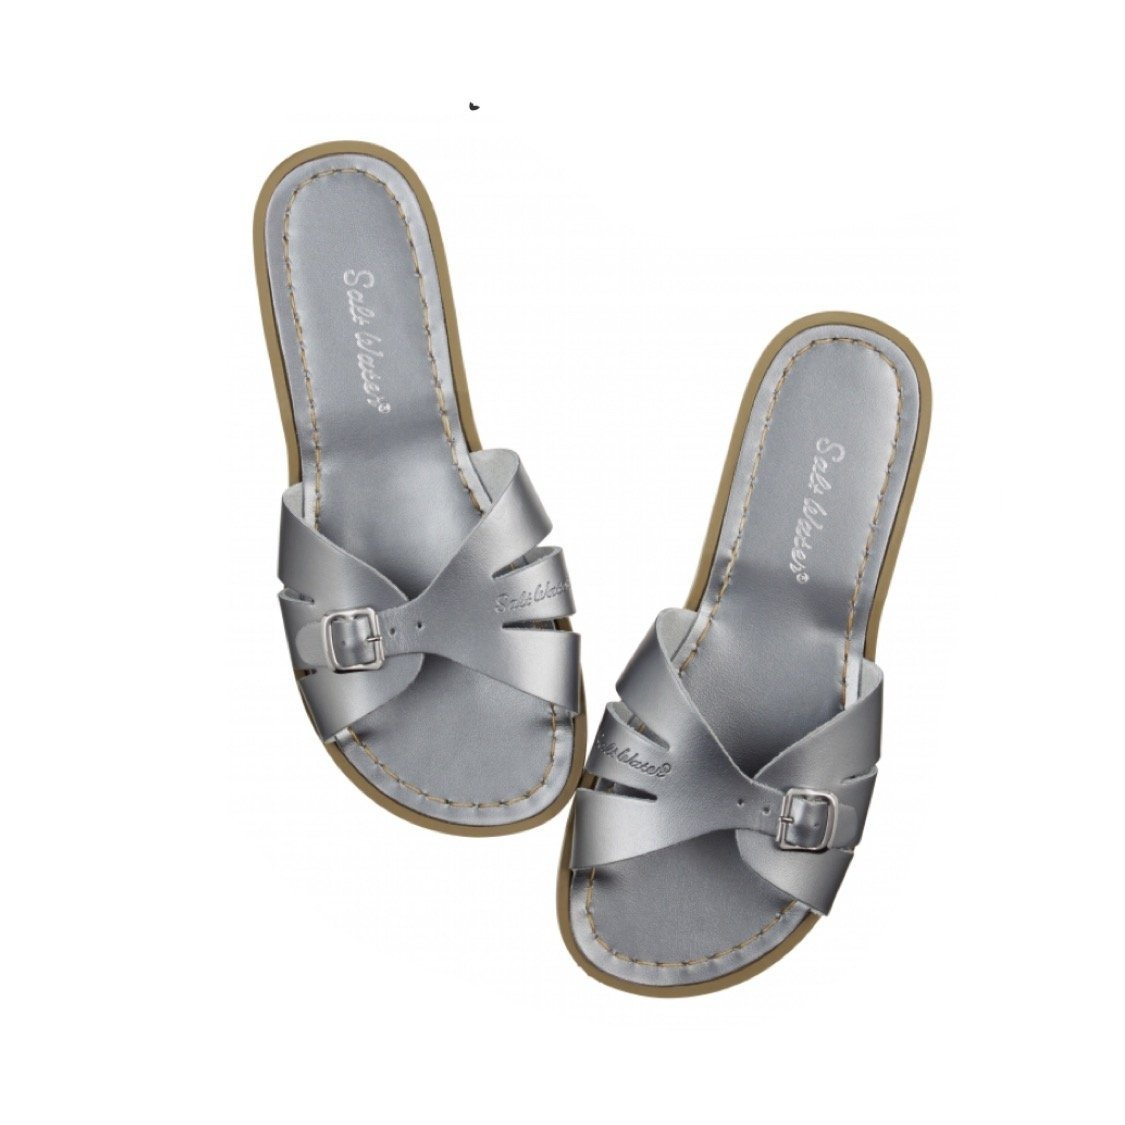 Adult Classic Slide Saltwater Sandals - Pewter Sandals Salt Water Sandals